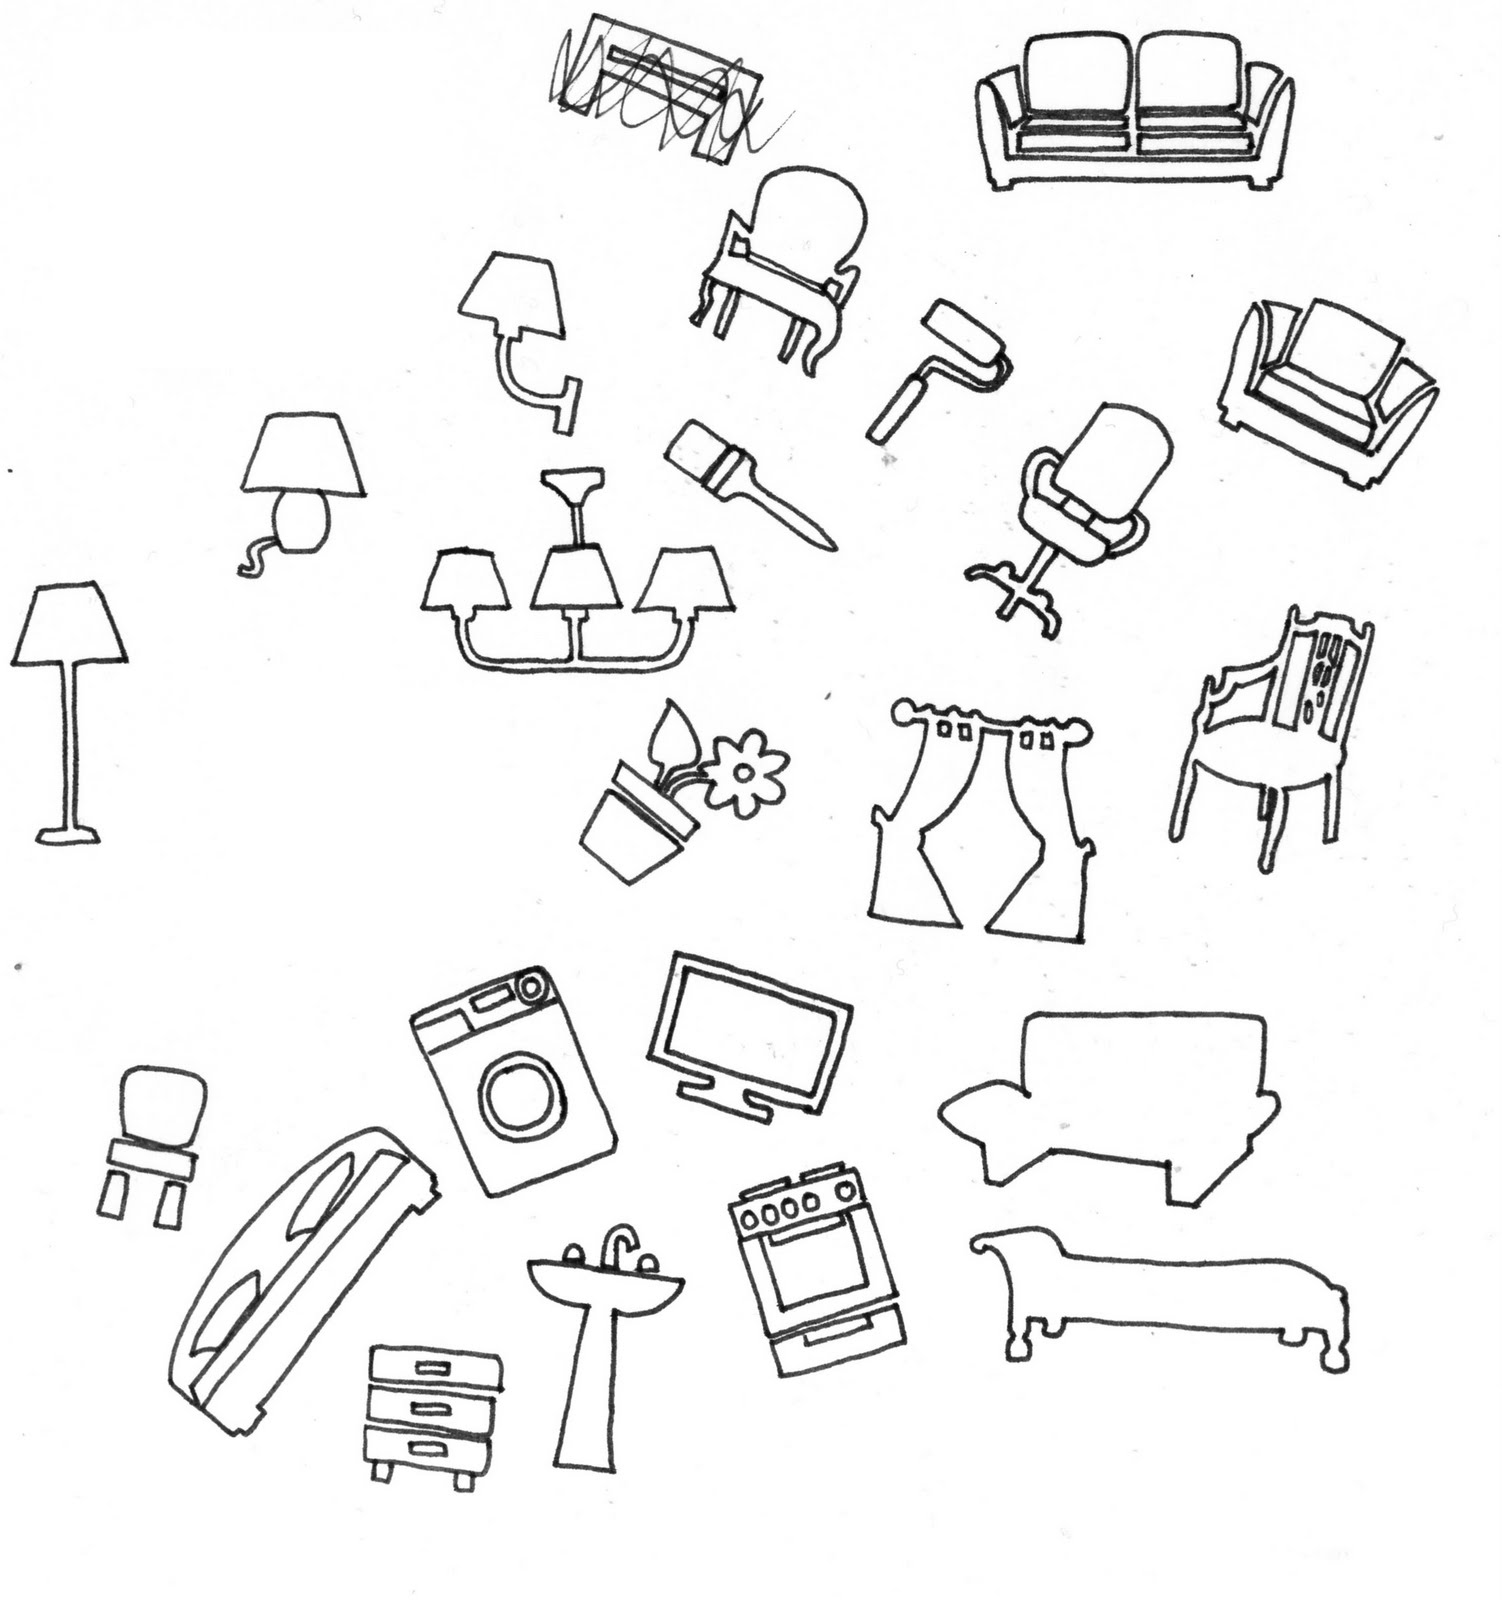 Furniture Line Drawings -  drawings of furniture and utensils in the house i wanted to use these to on to create a set of three posters and also a typeface using the ikea colours